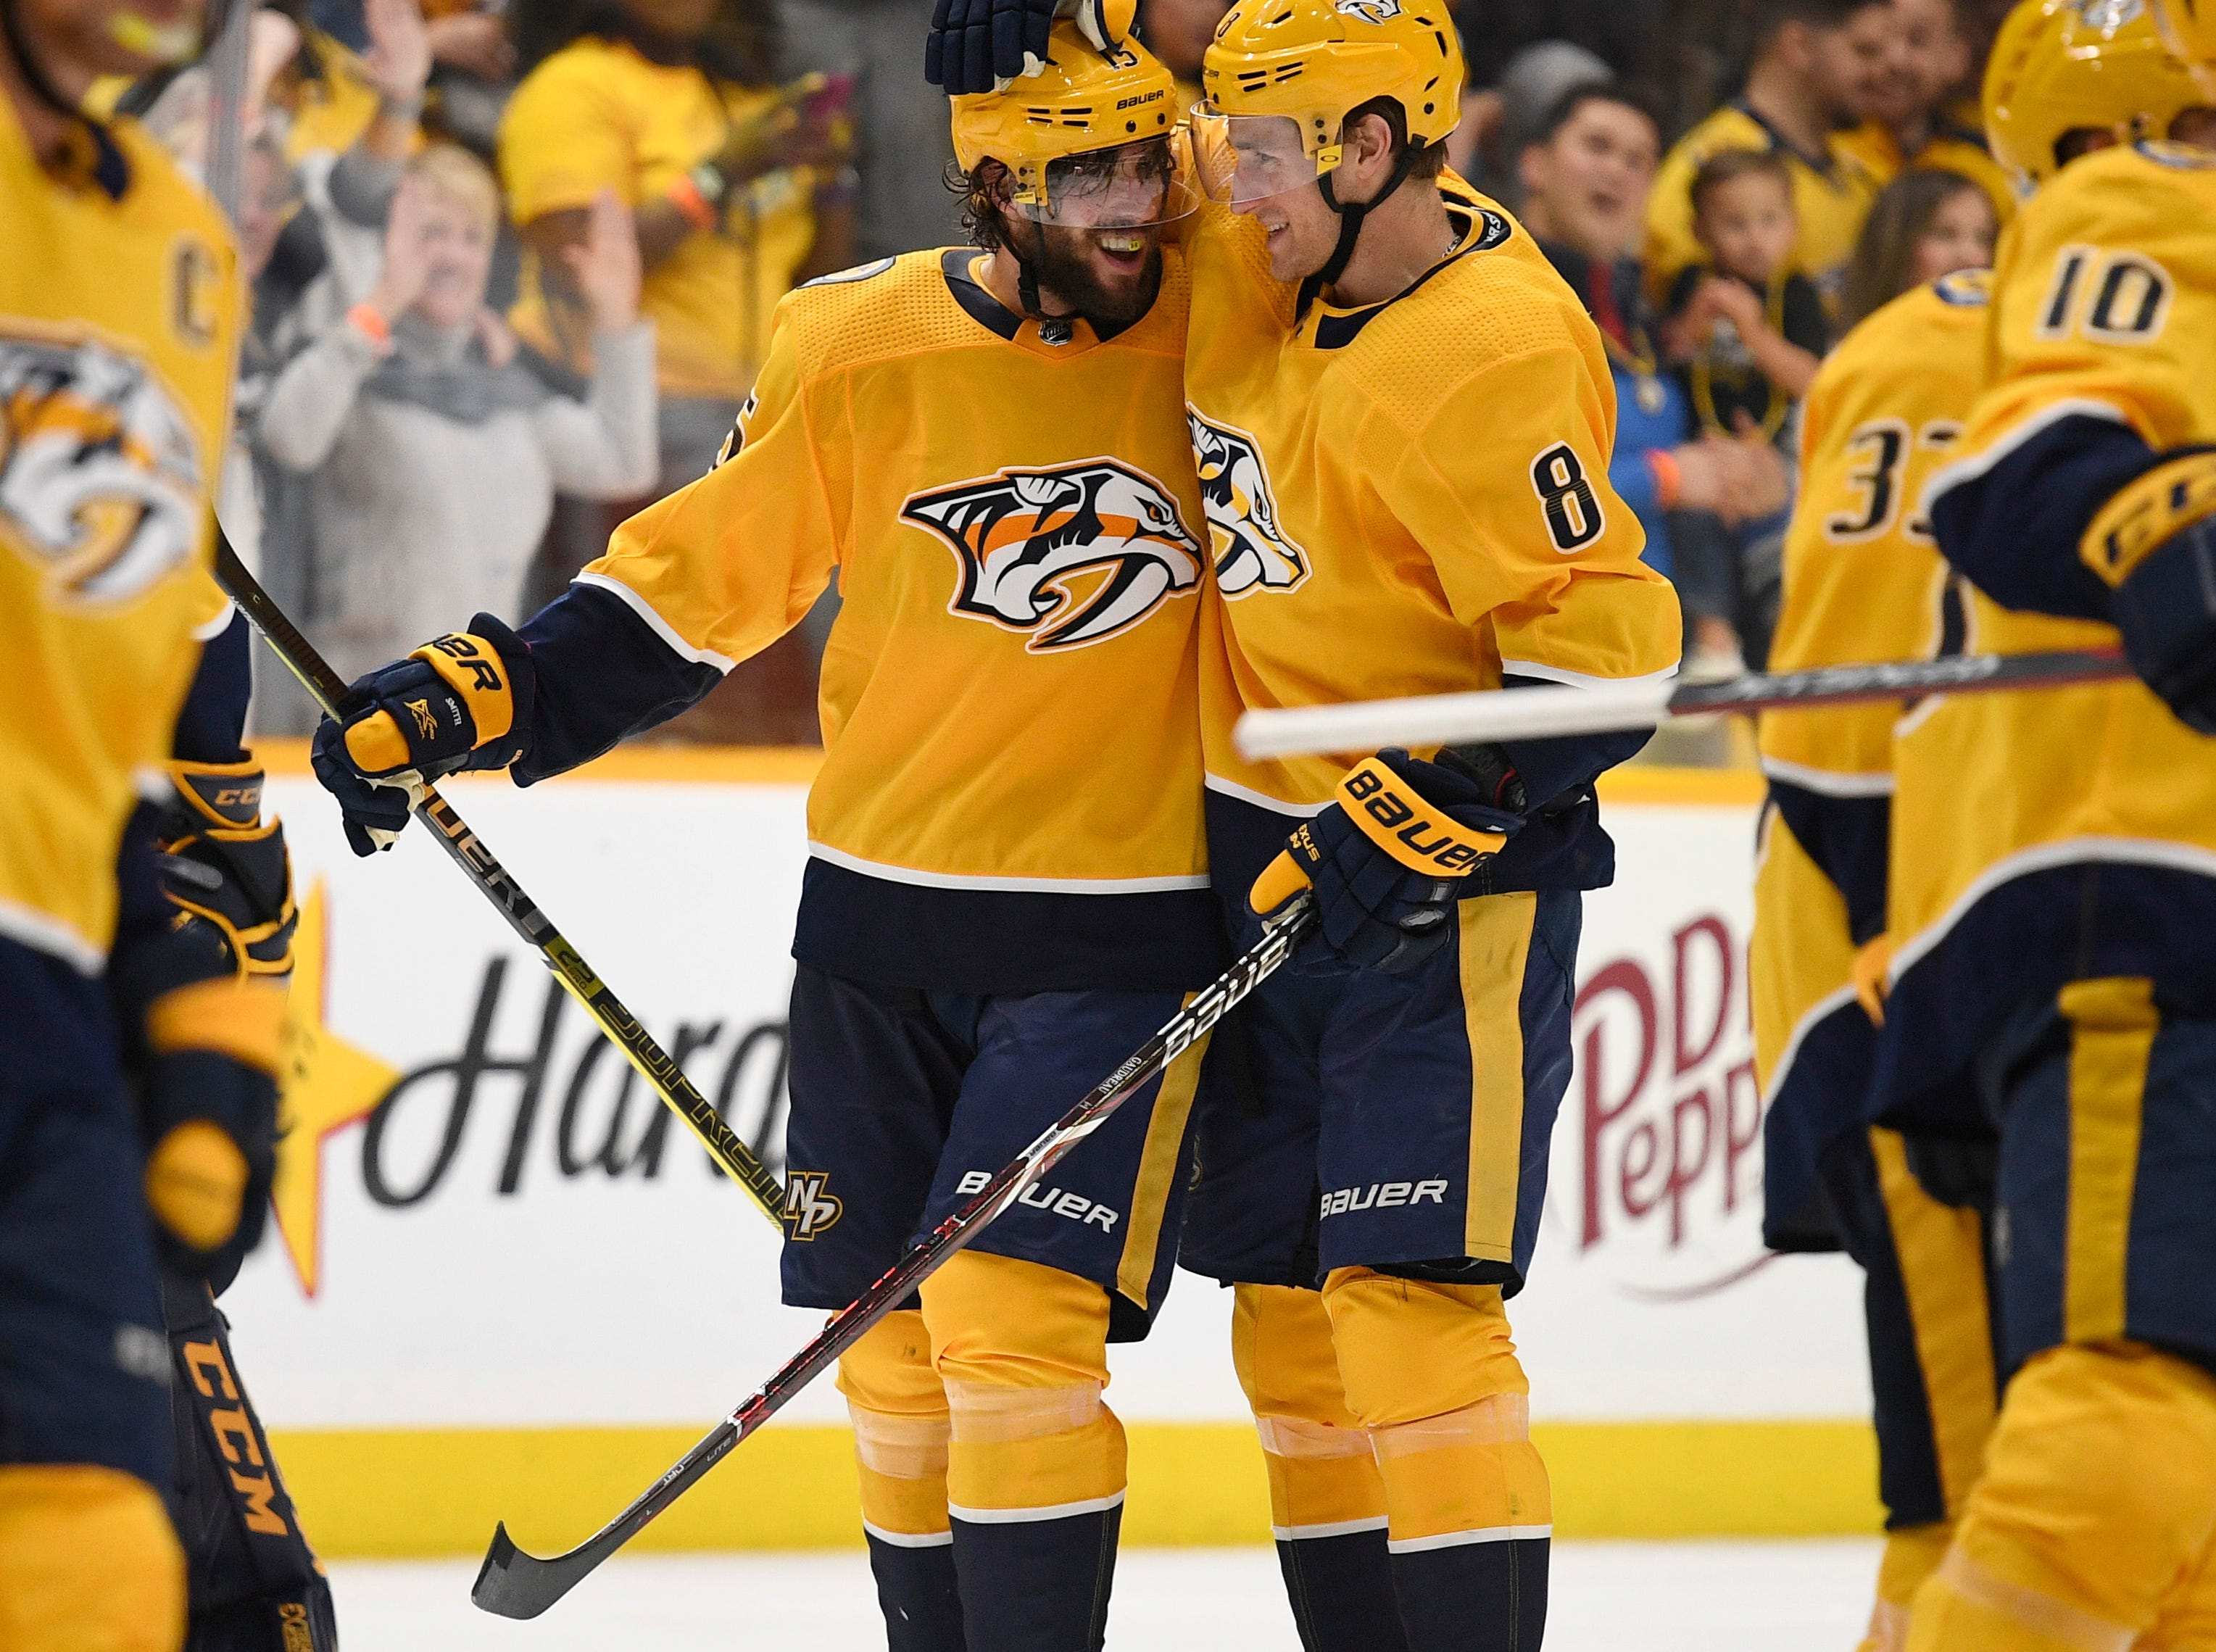 Nashville Predators right wing Craig Smith (15) celebrates with center Kyle Turris (8) after Smith's game-winning goal in overtime to give the Predators a 2-1 win in the divisional semifinal game at Bridgestone Arena in Nashville, Tenn., Saturday, April 13, 2019.